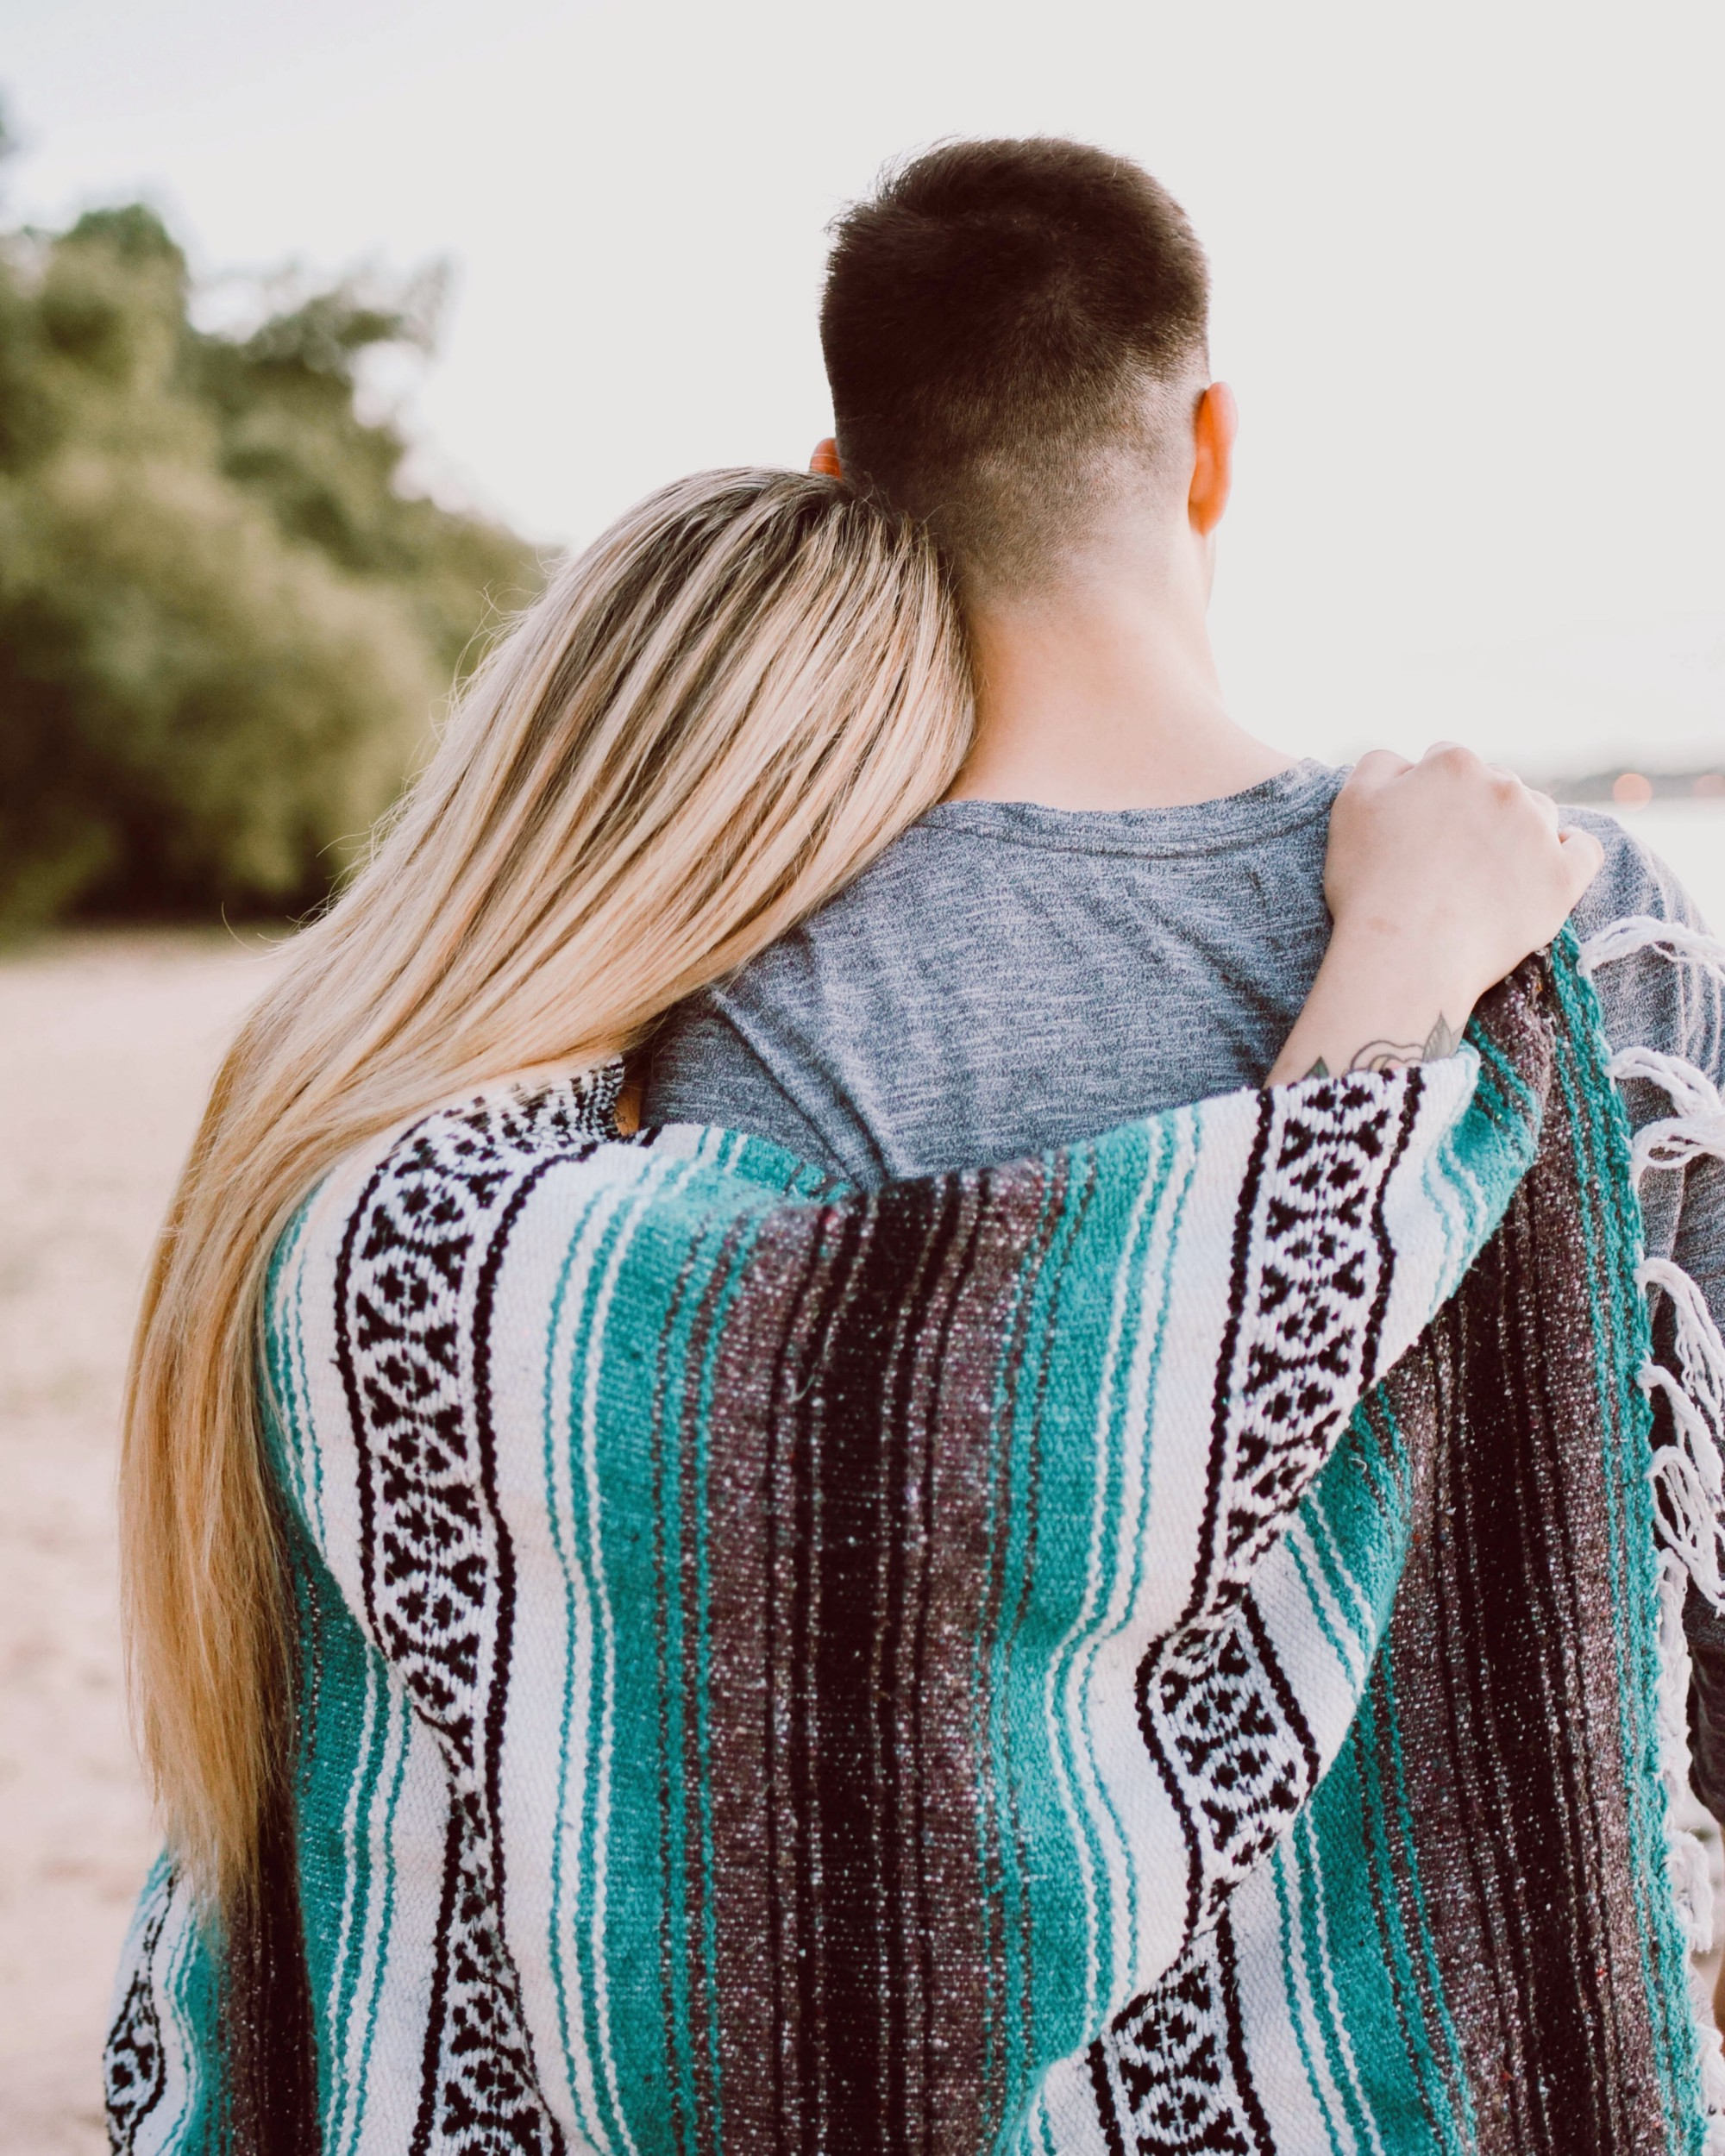 A man and woman hugging with a blue patterned blanket